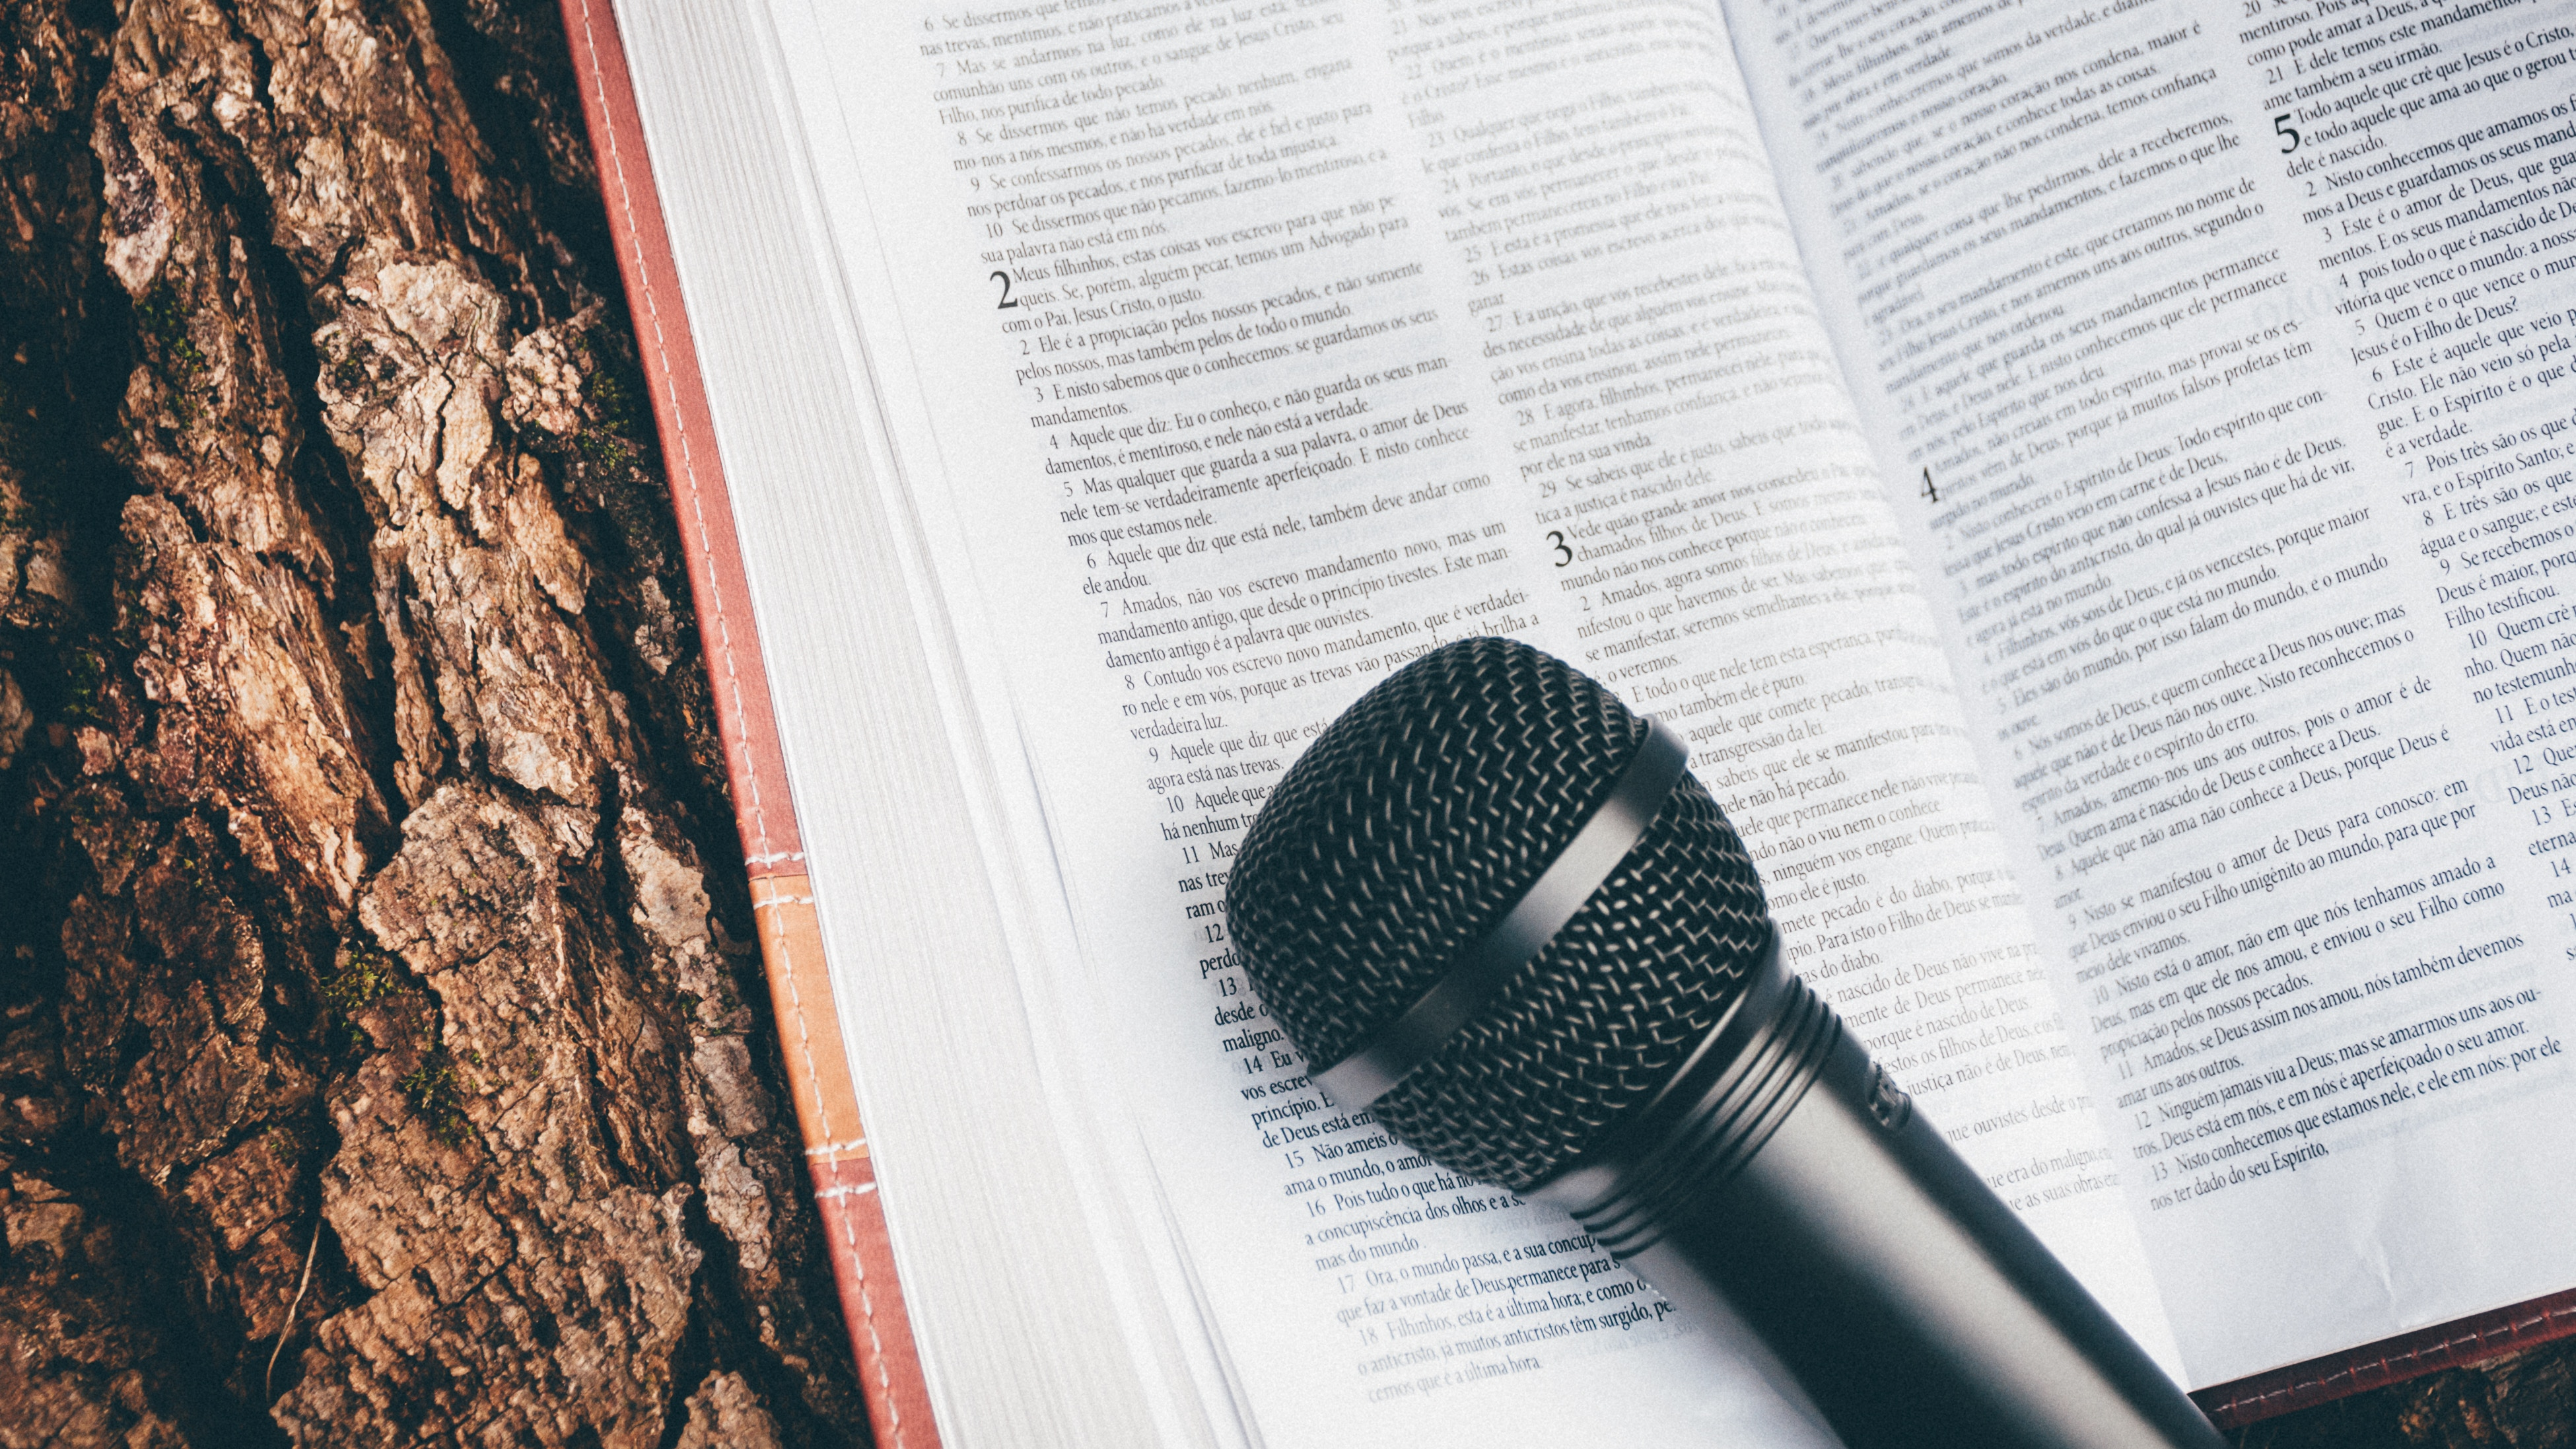 microphone lying on book